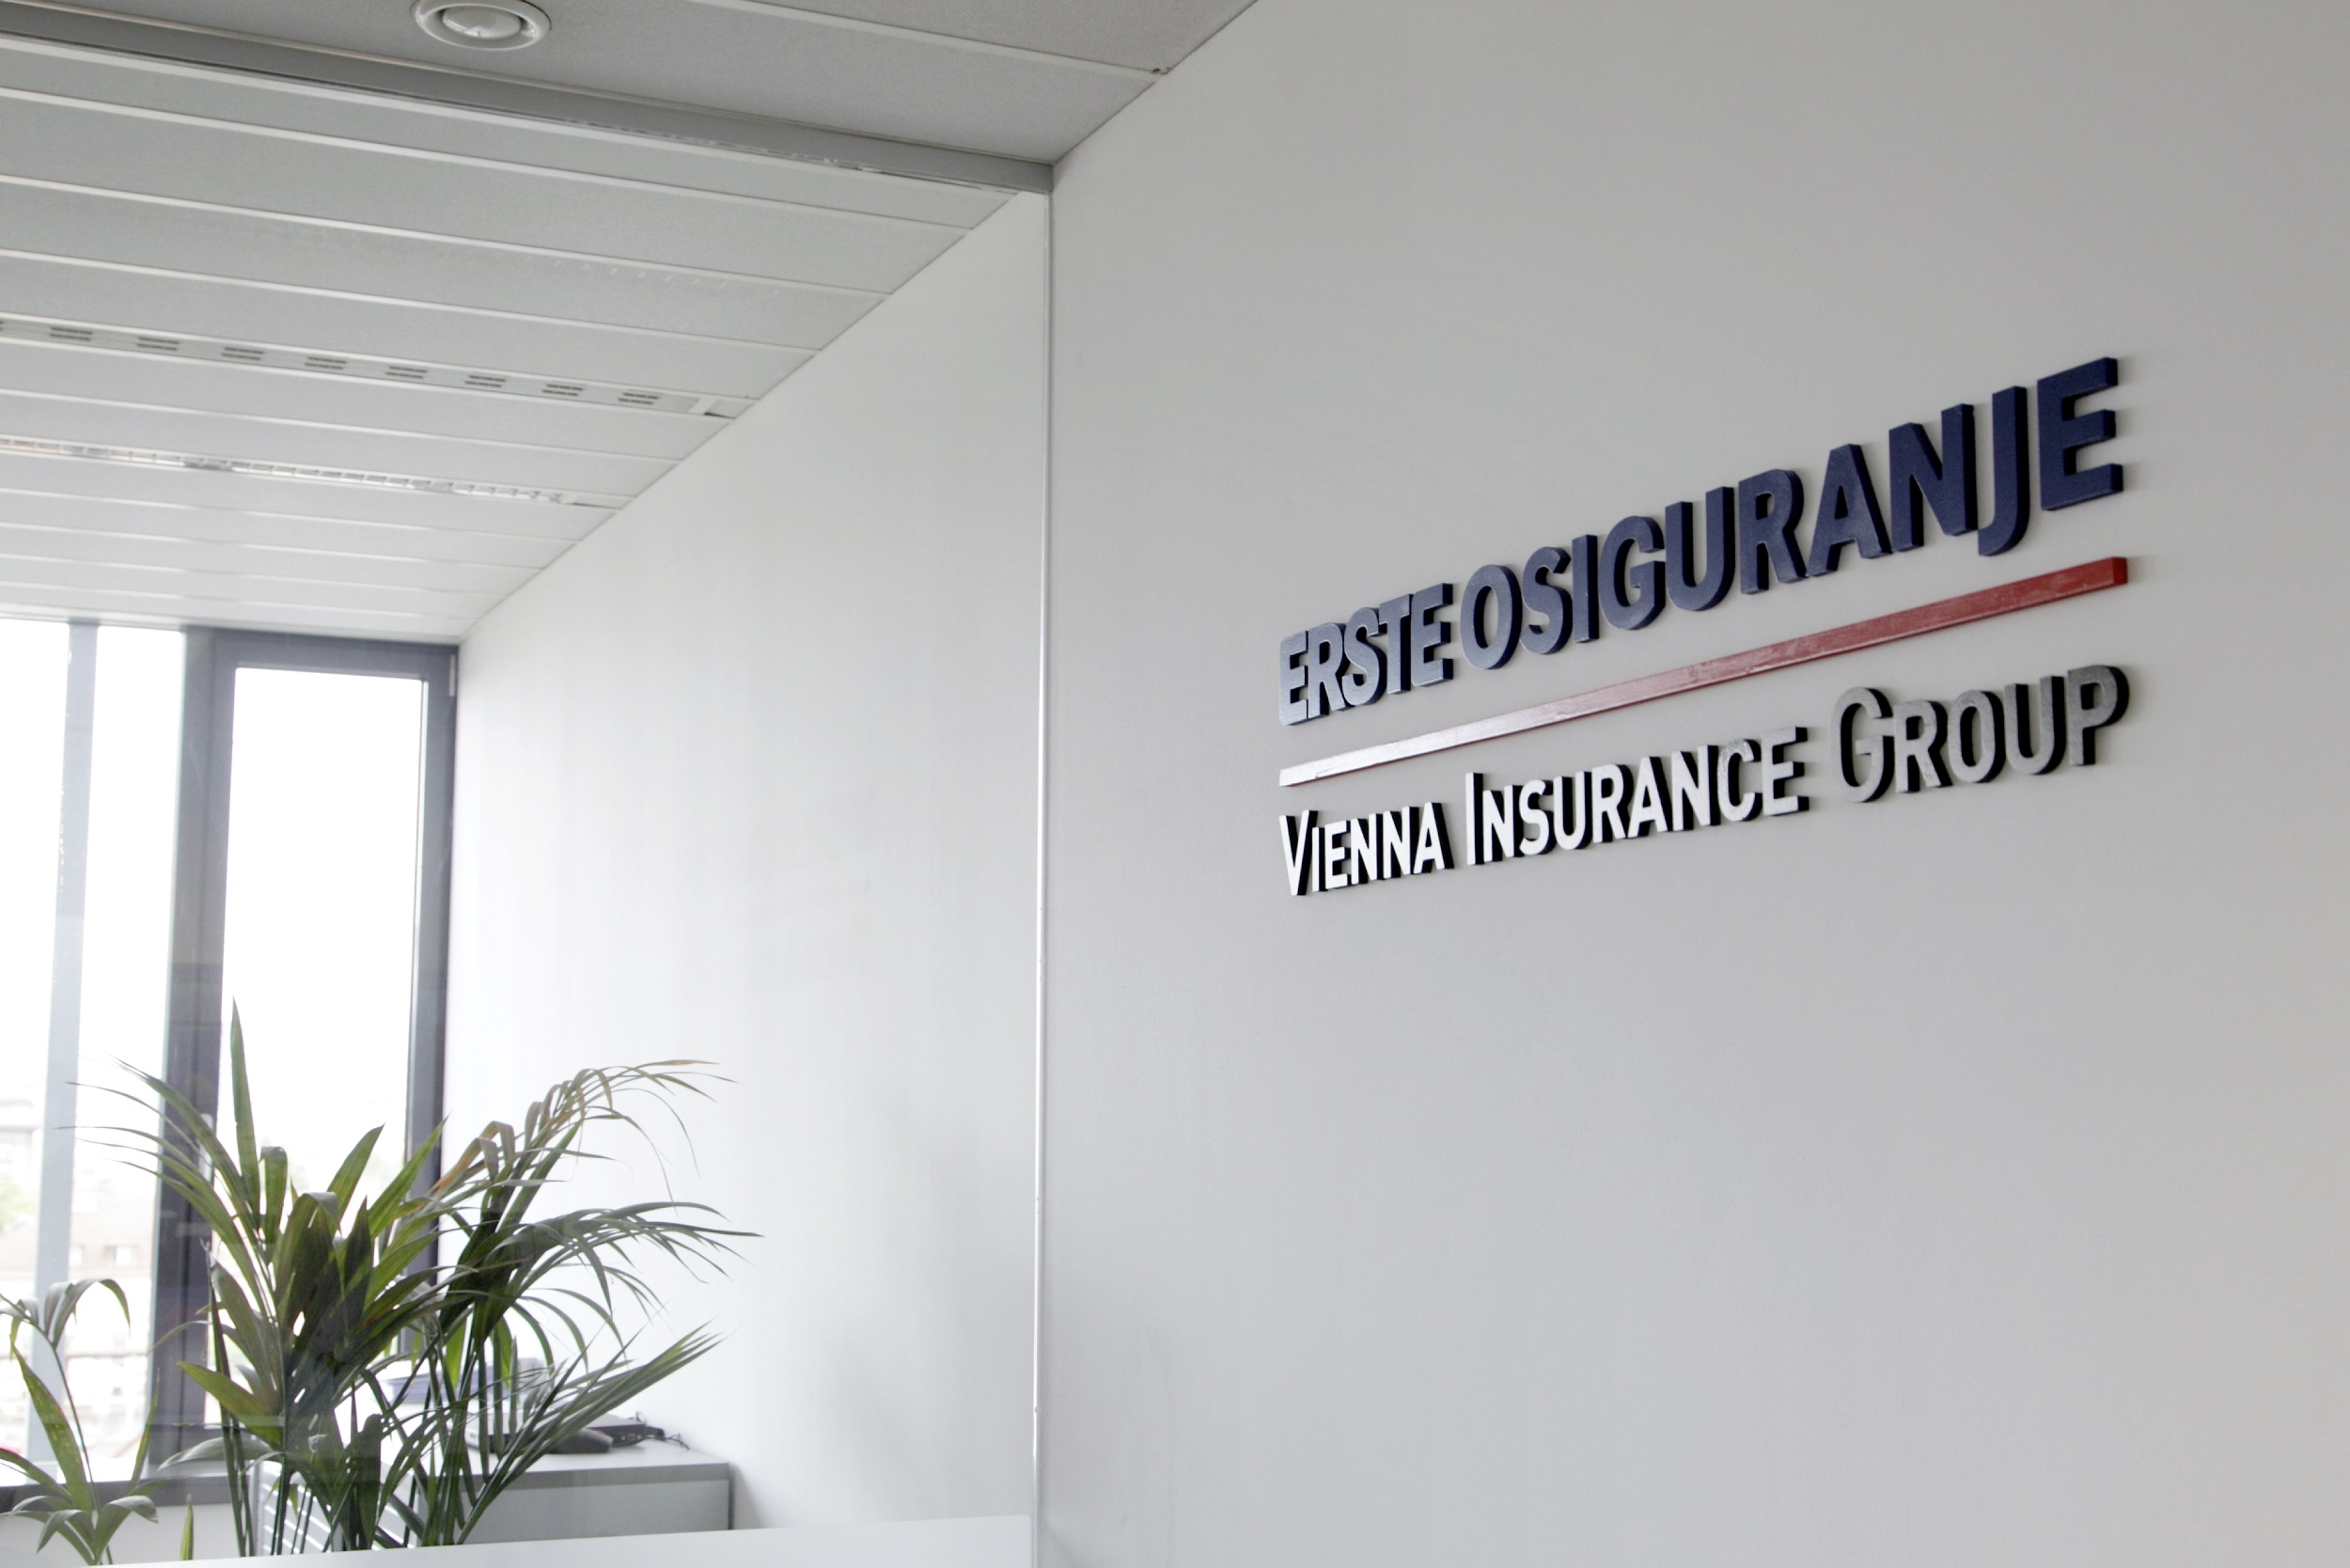 VIG to merge Croatian brands to boost bankassurance business